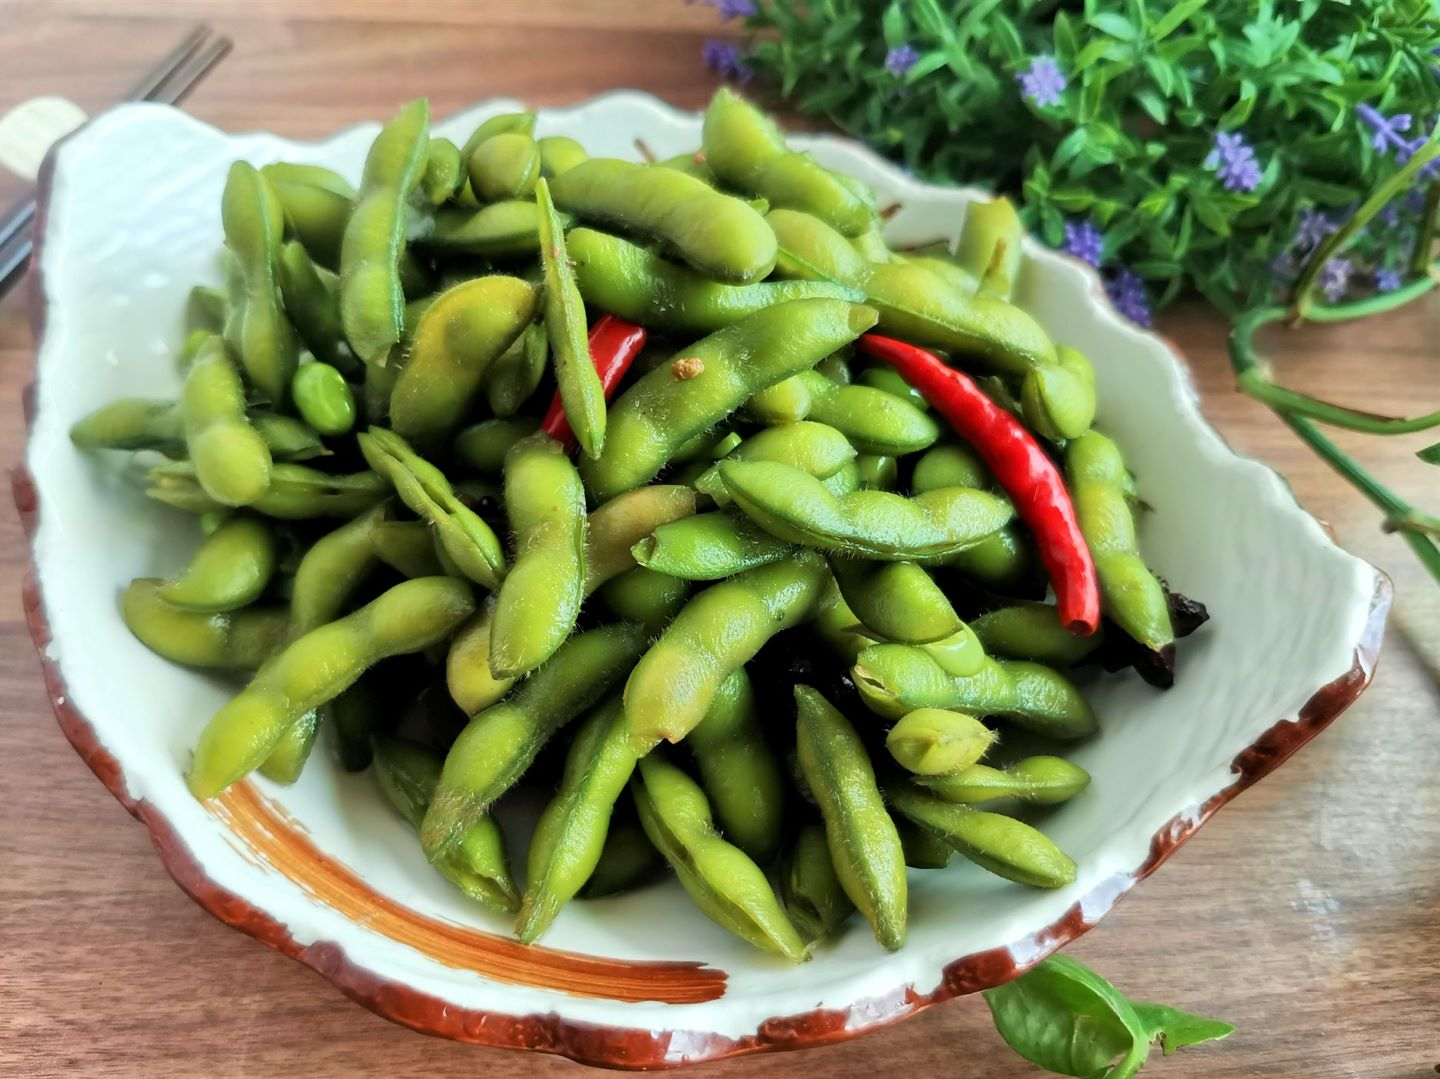 Spiced green soybeans Edamame soy beans Recipe Simple chinese summer snack